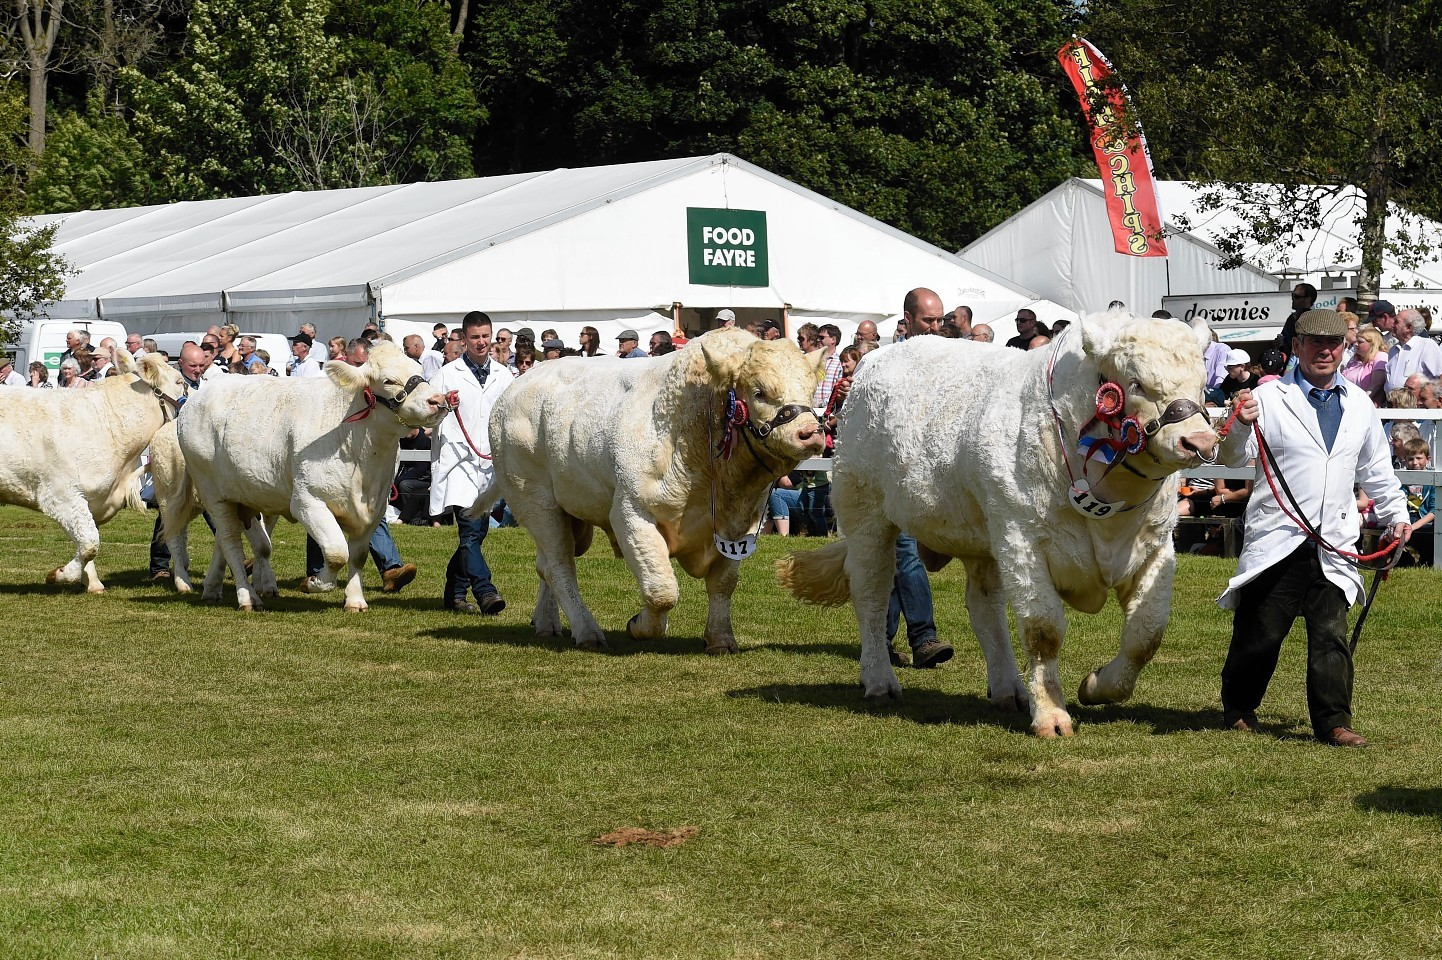 The parade of cattle